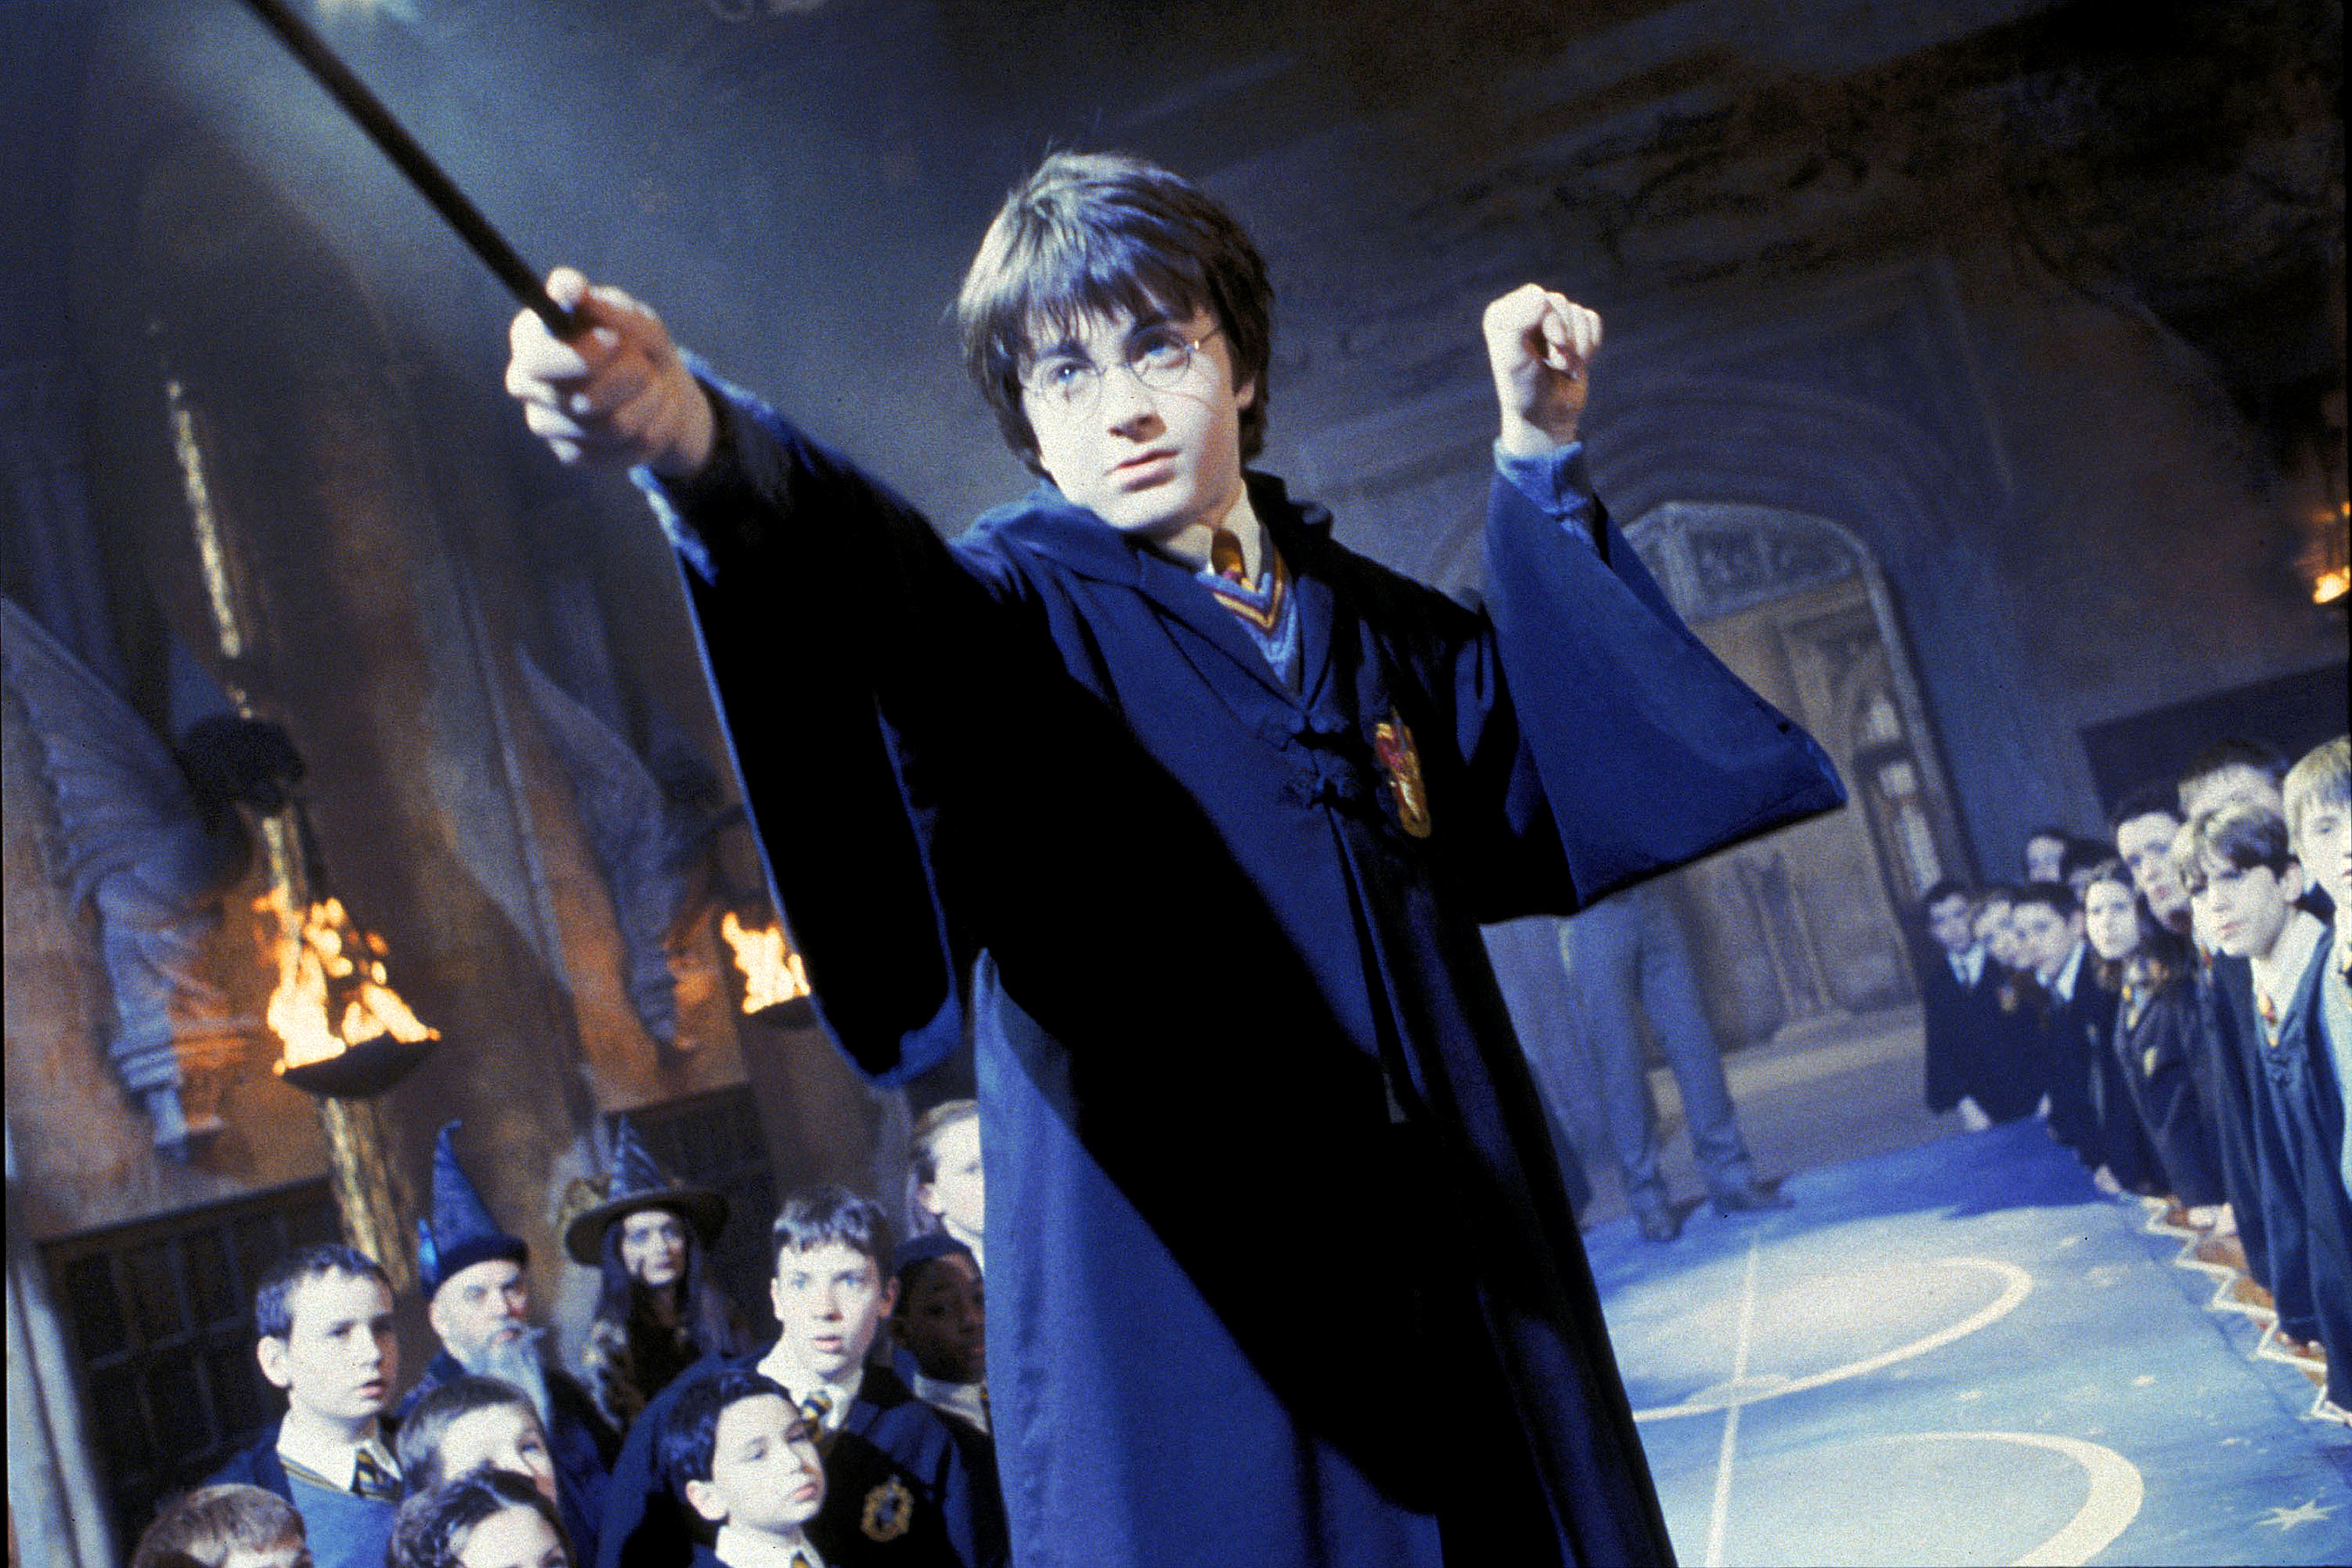 Harry Potter and the Chamber of Secrets (2002)                       Daniel Radcliffe as Harry Potter